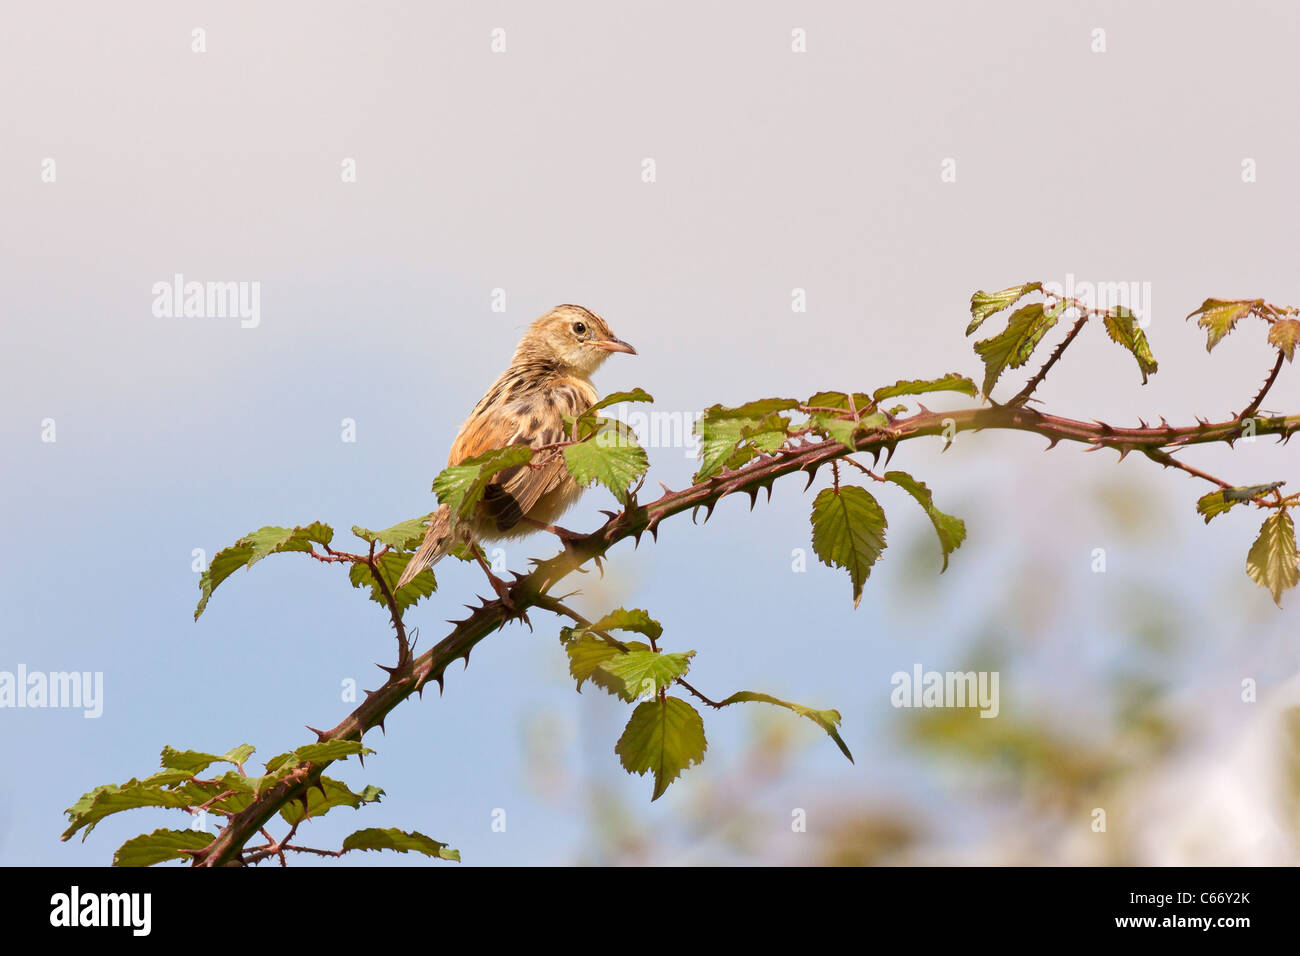 Streaked Fantail Warbler (Cisticola juncidis) on a branc against blue sky - Stock Image